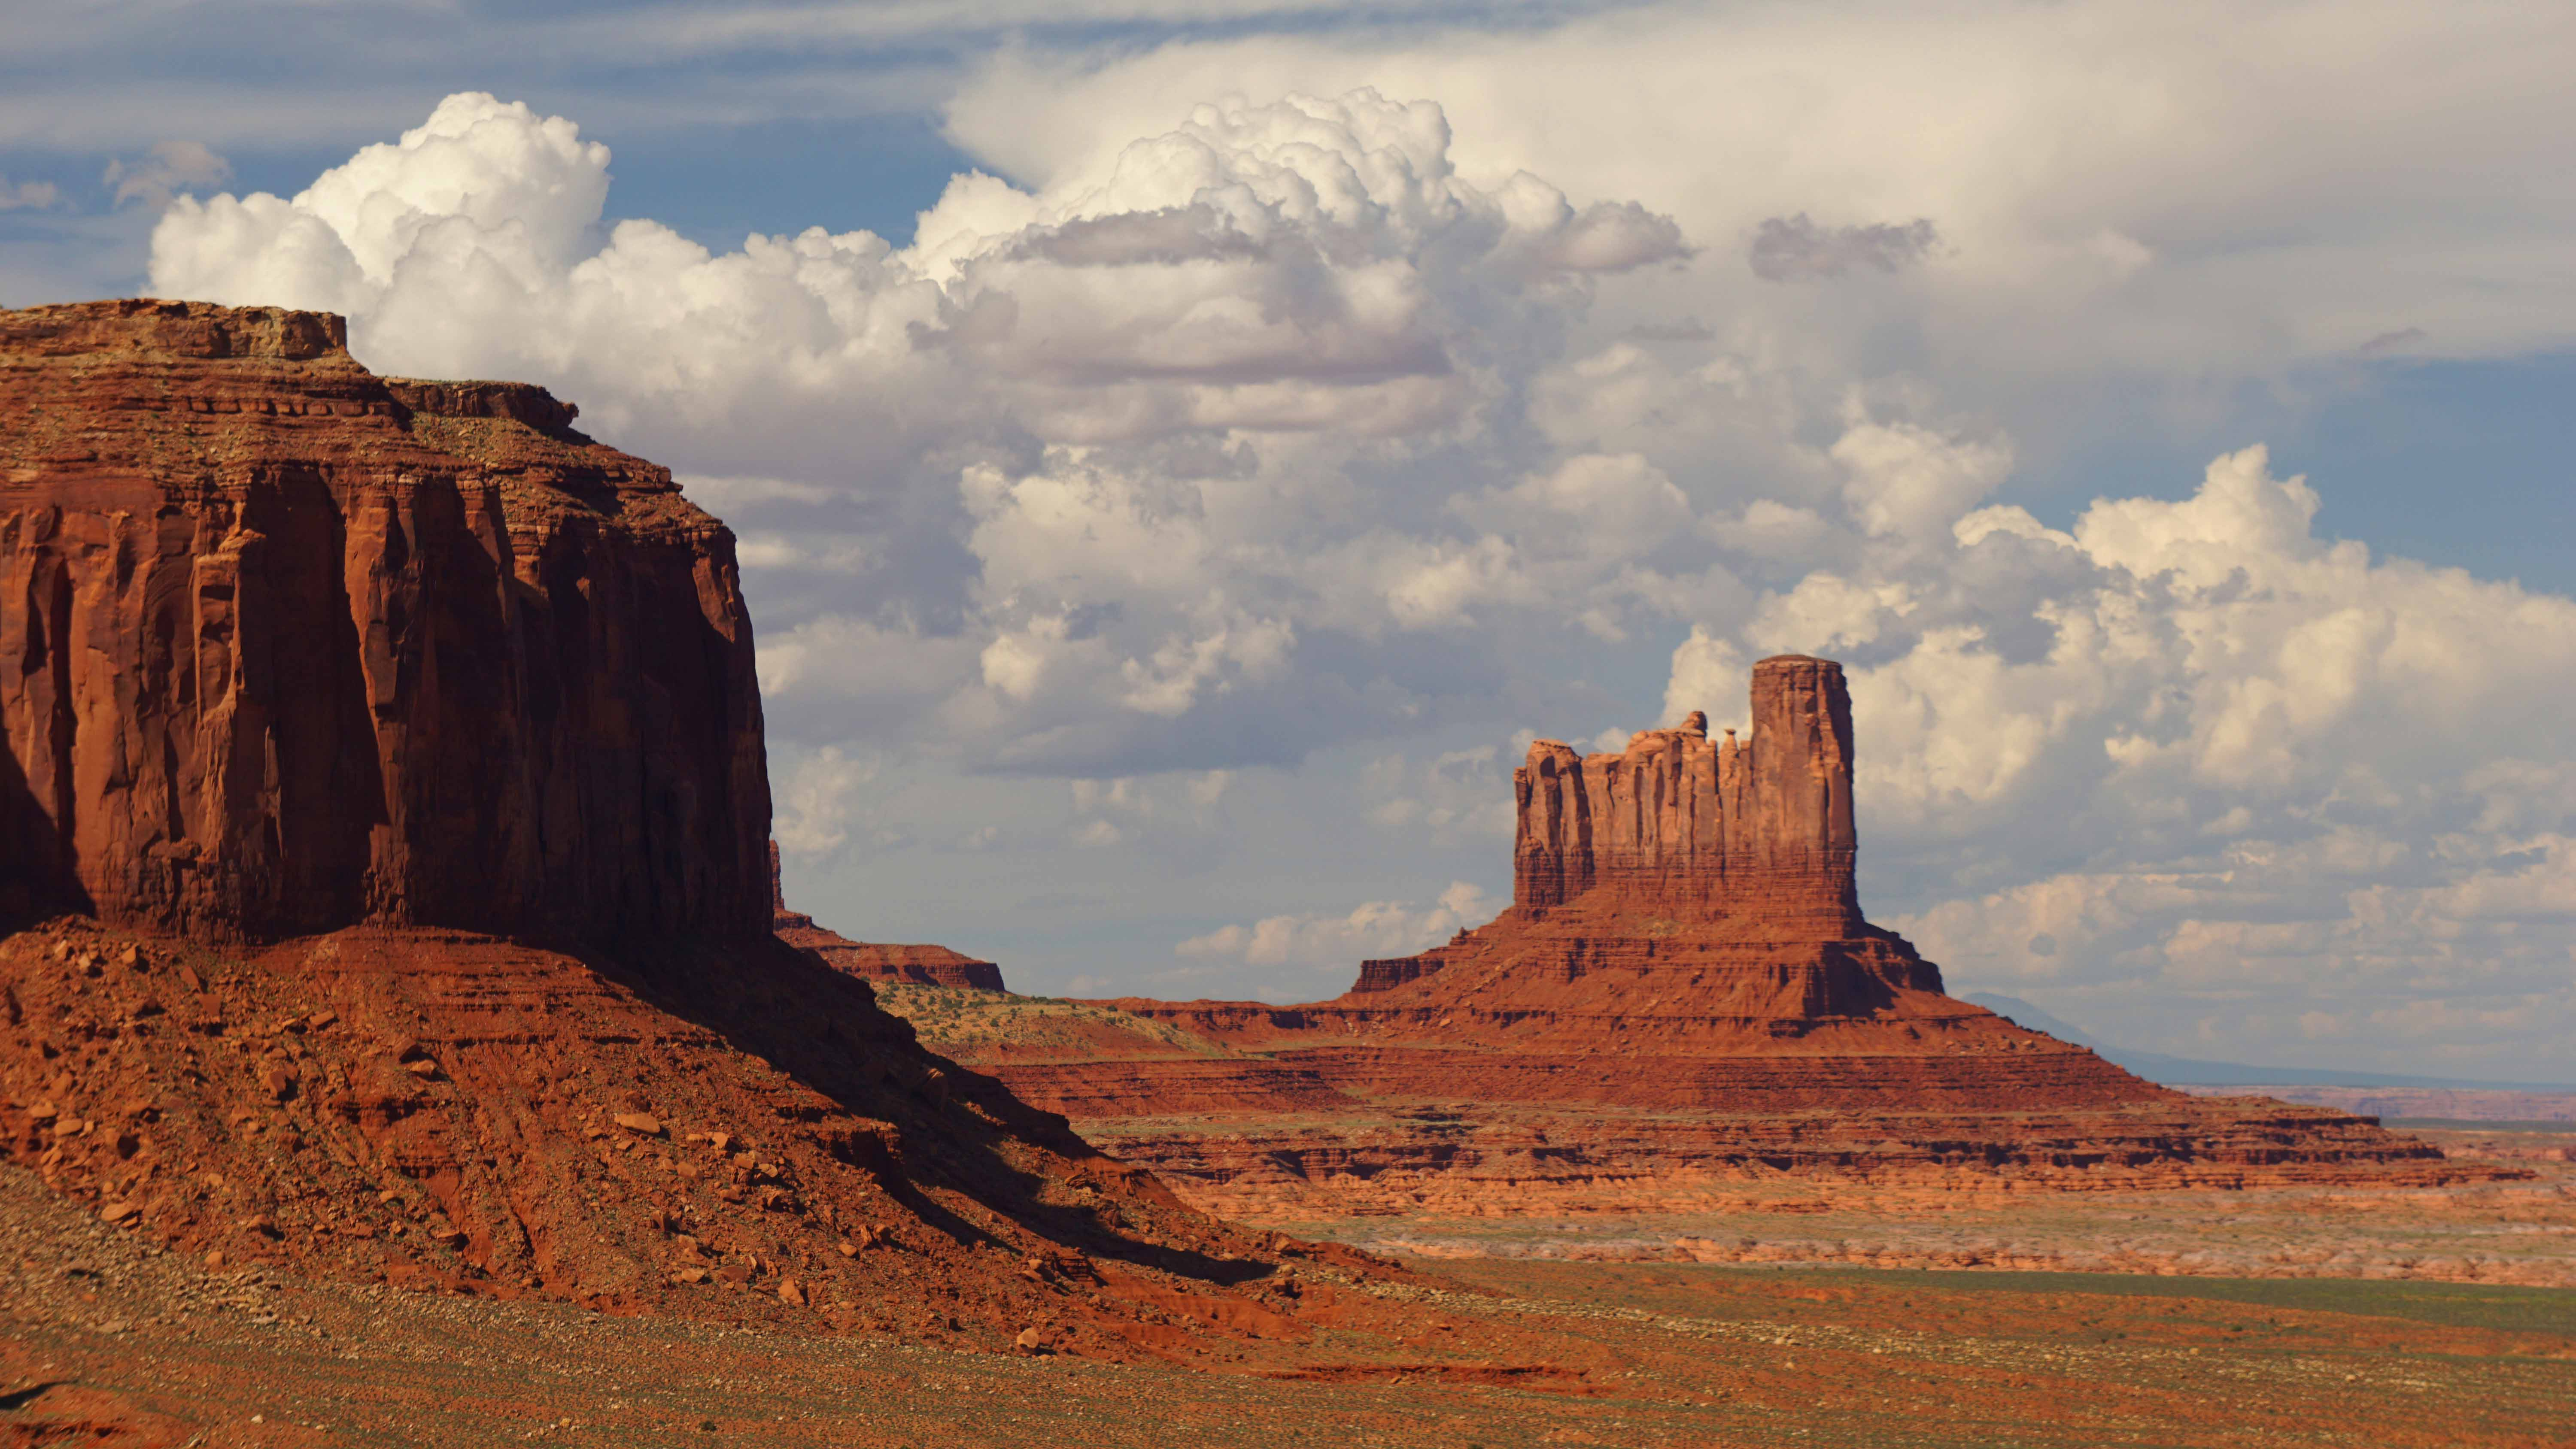 Fuel Near Me >> Searching for The Searchers at Monument Valley - J. Dawg ...